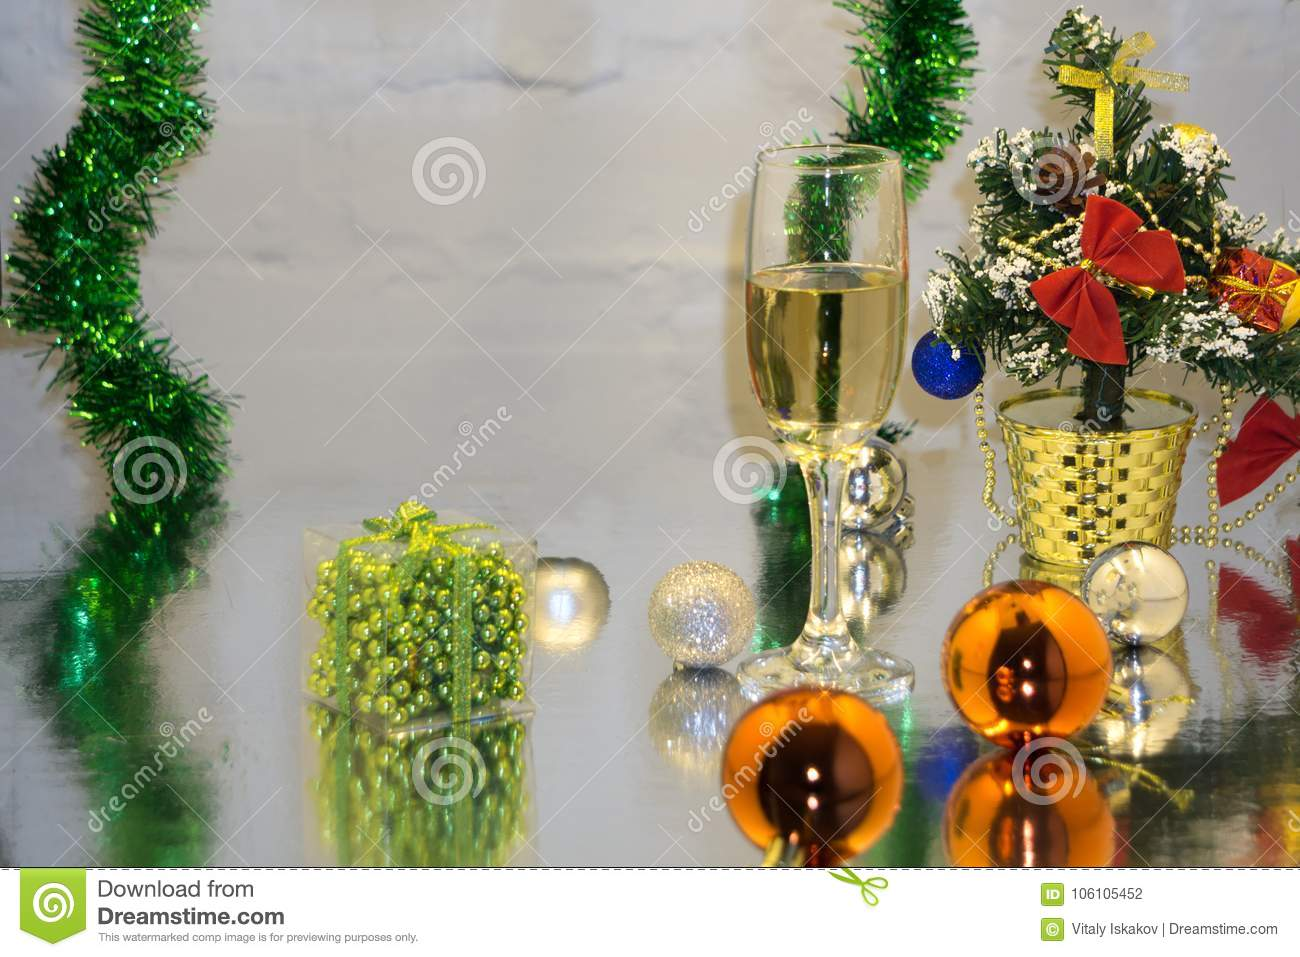 Greeting card made of christmas and yew year decoration balls, tinsel, candle and two glasses of champagne with reflection, copy s